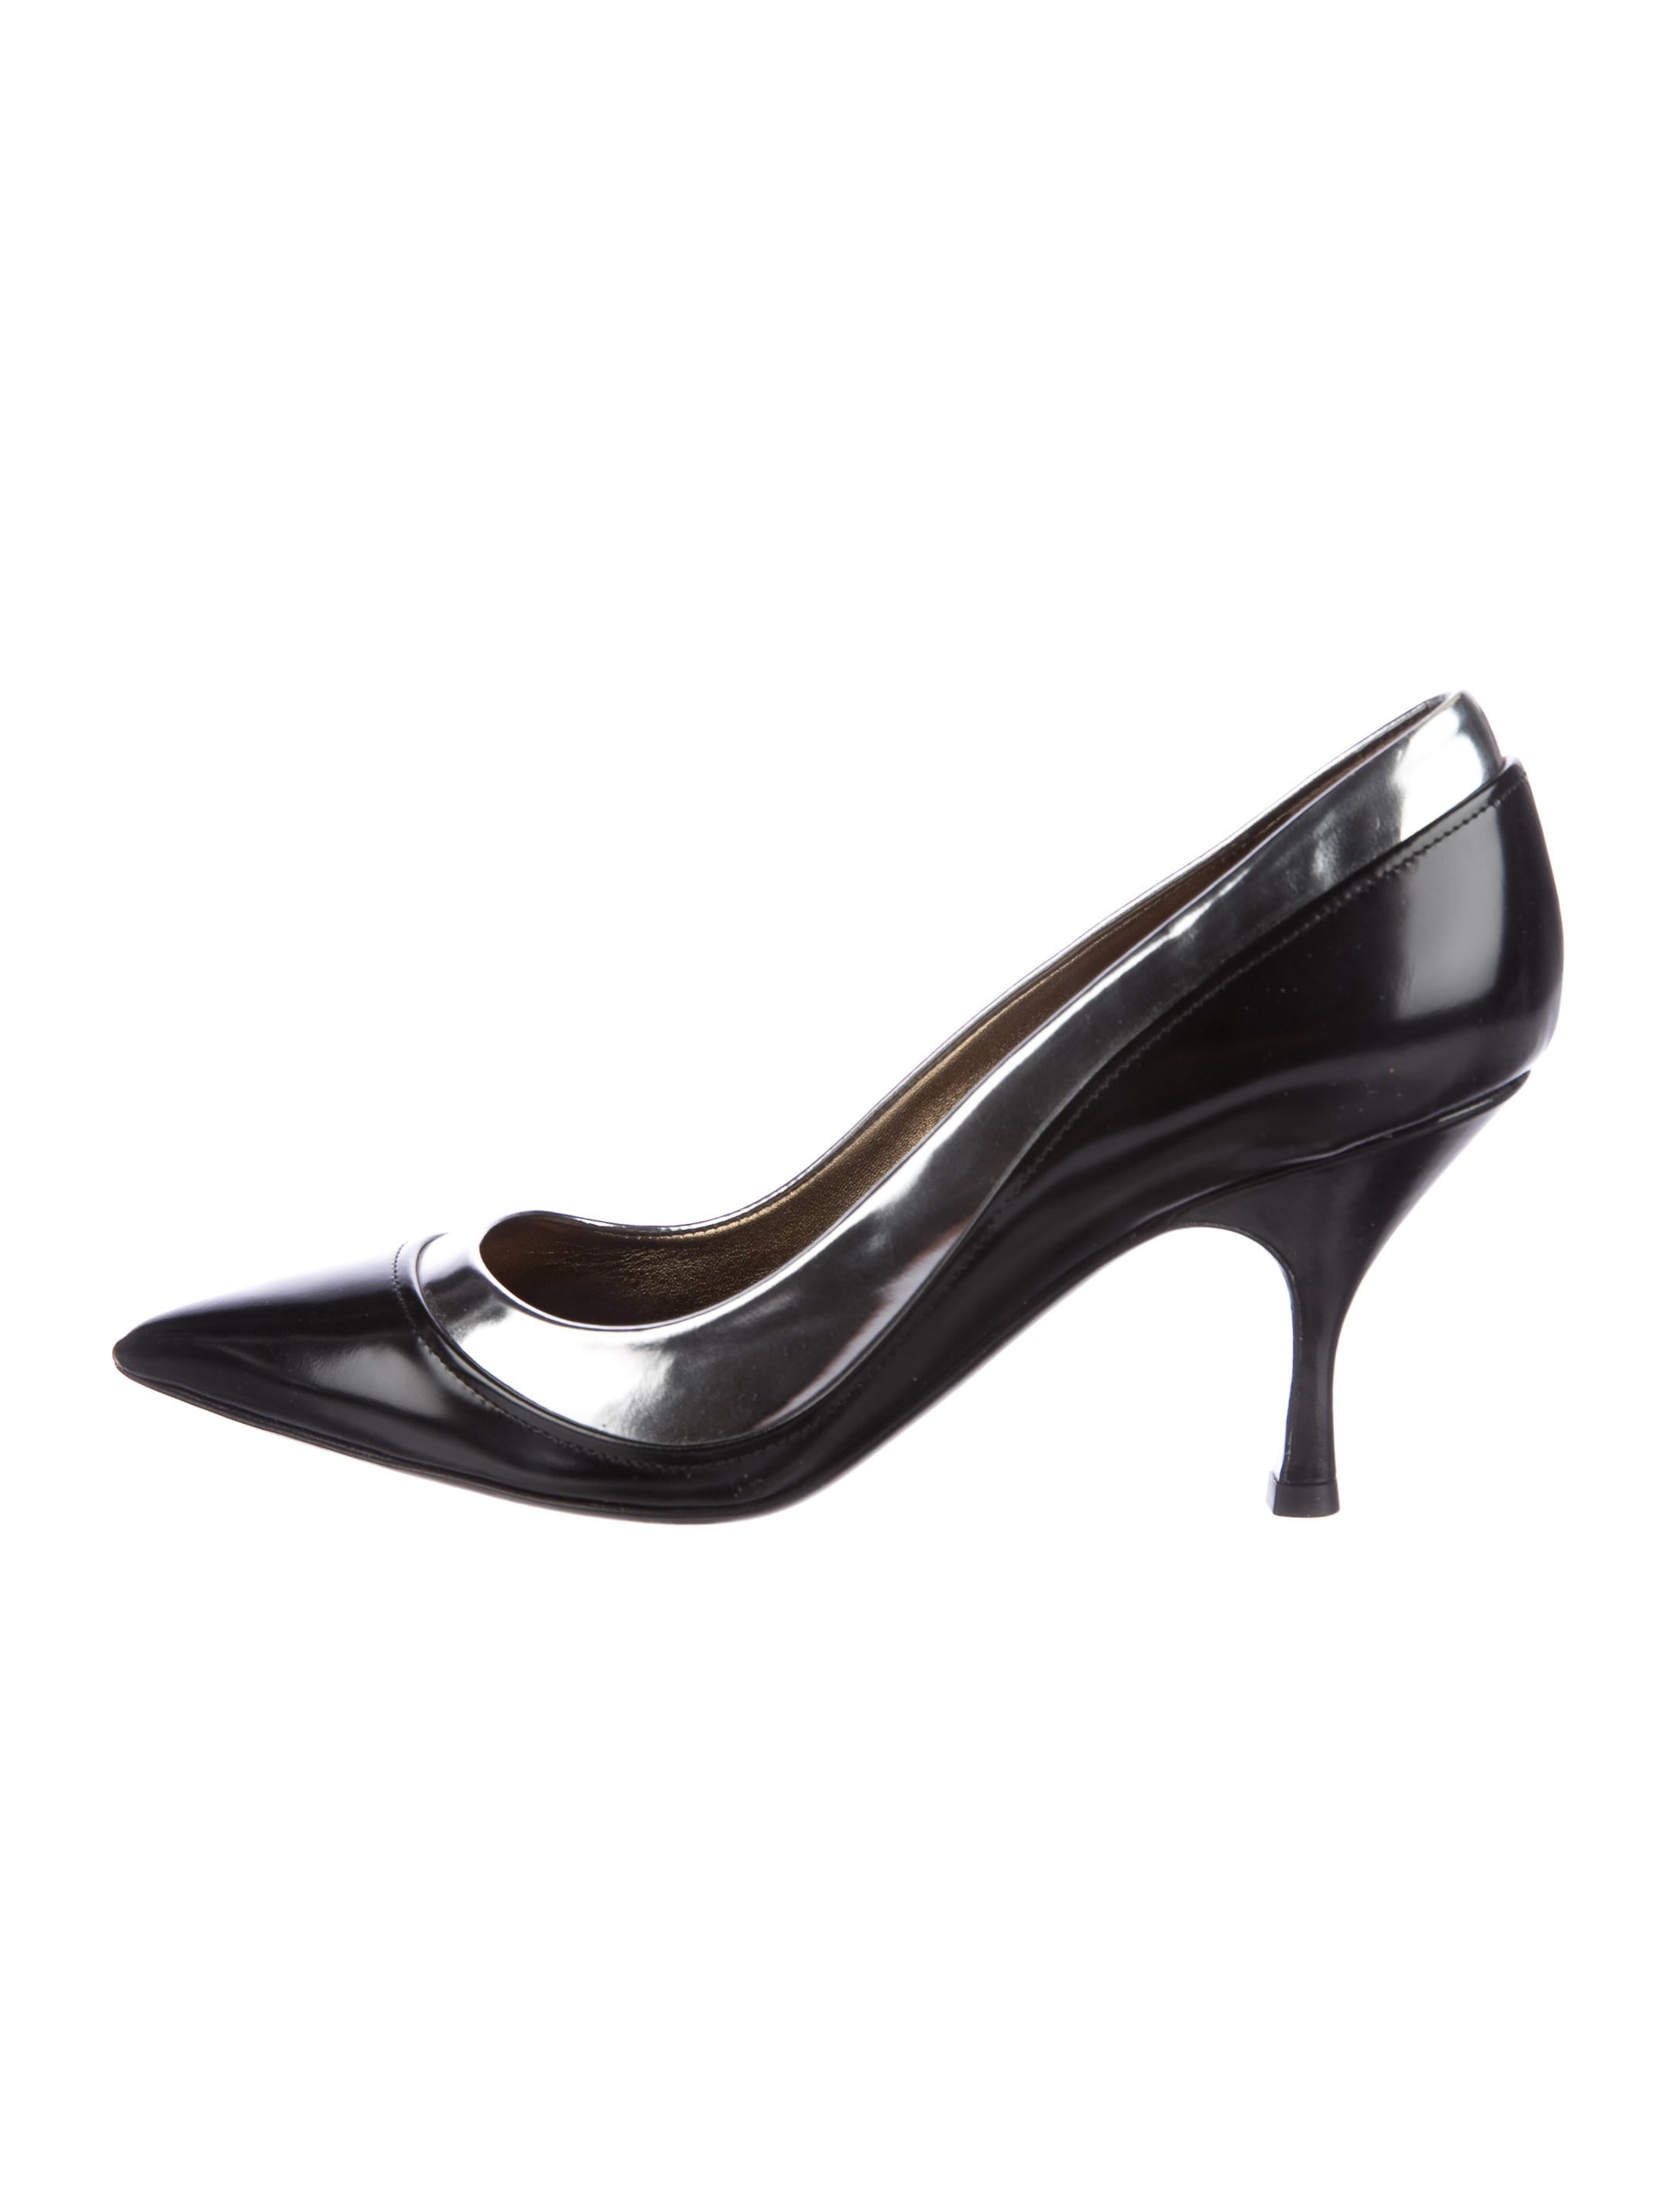 Lanvin Bicolor Pointed-Toe Pumps cheapest price 4GnZRO